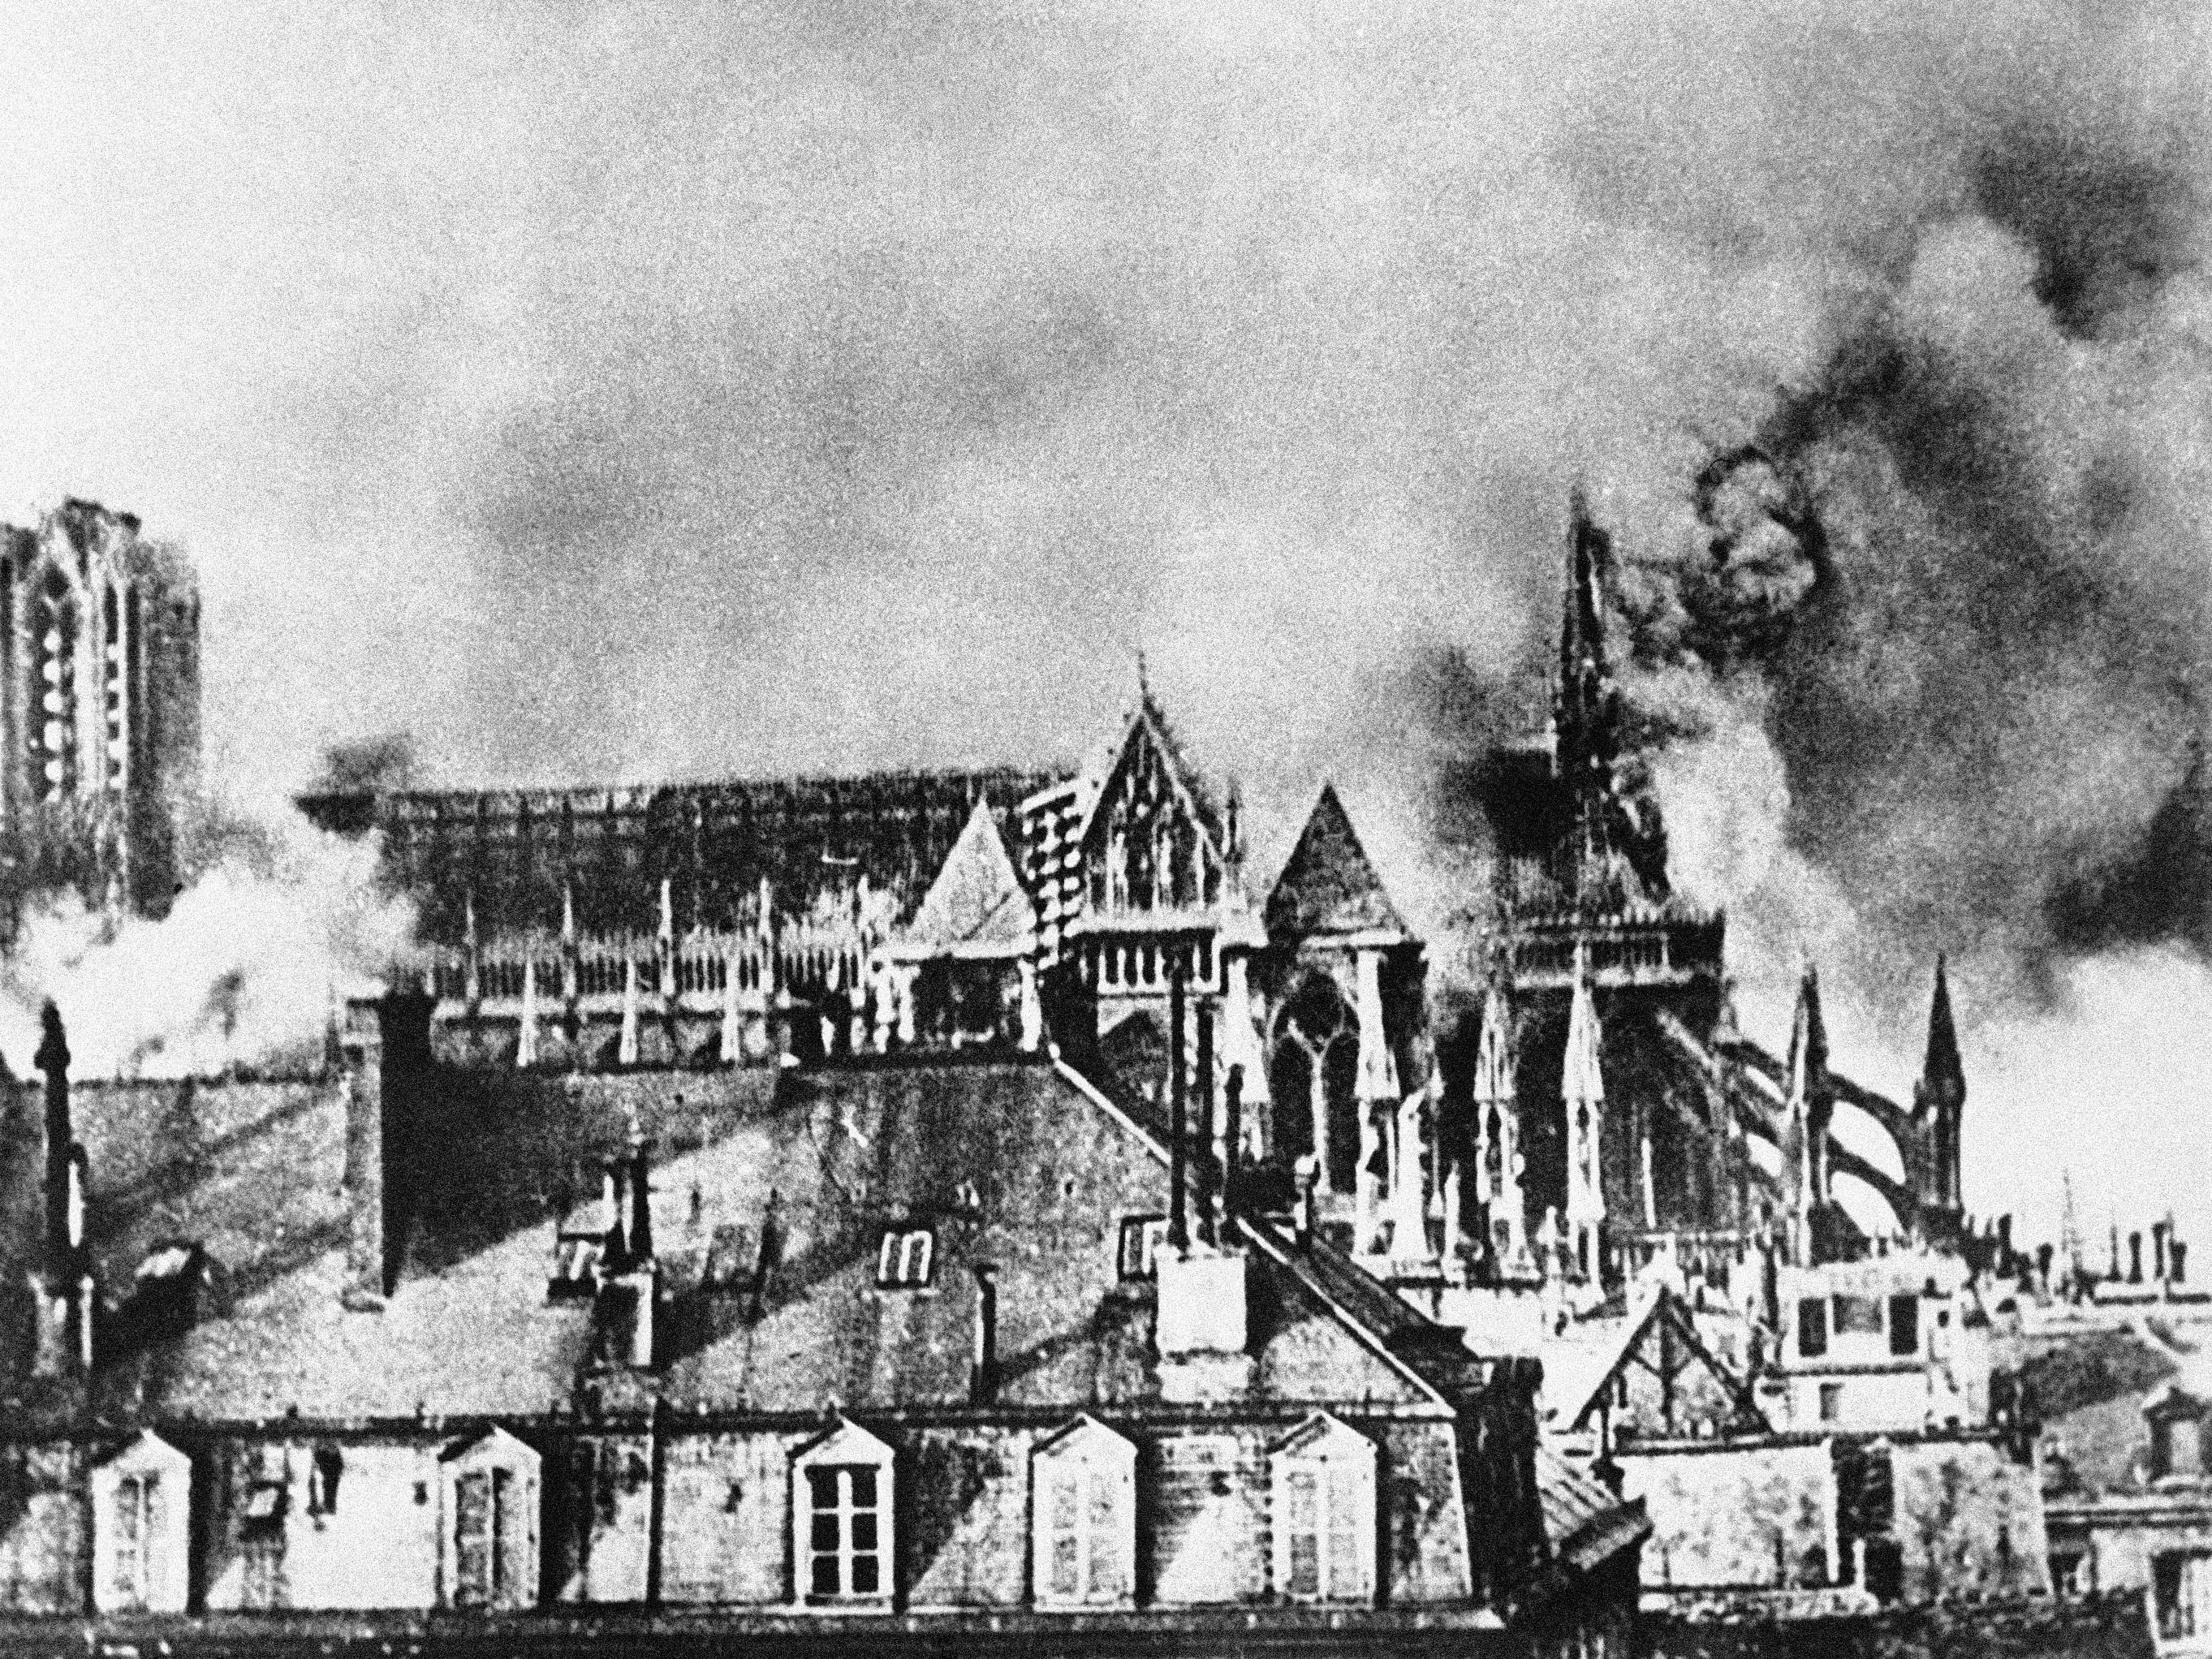 In this September 1914 file photo, the Cathedral of Reims, France, smokes after bombardment during World War I. The advancing German army heavily damaged the city.